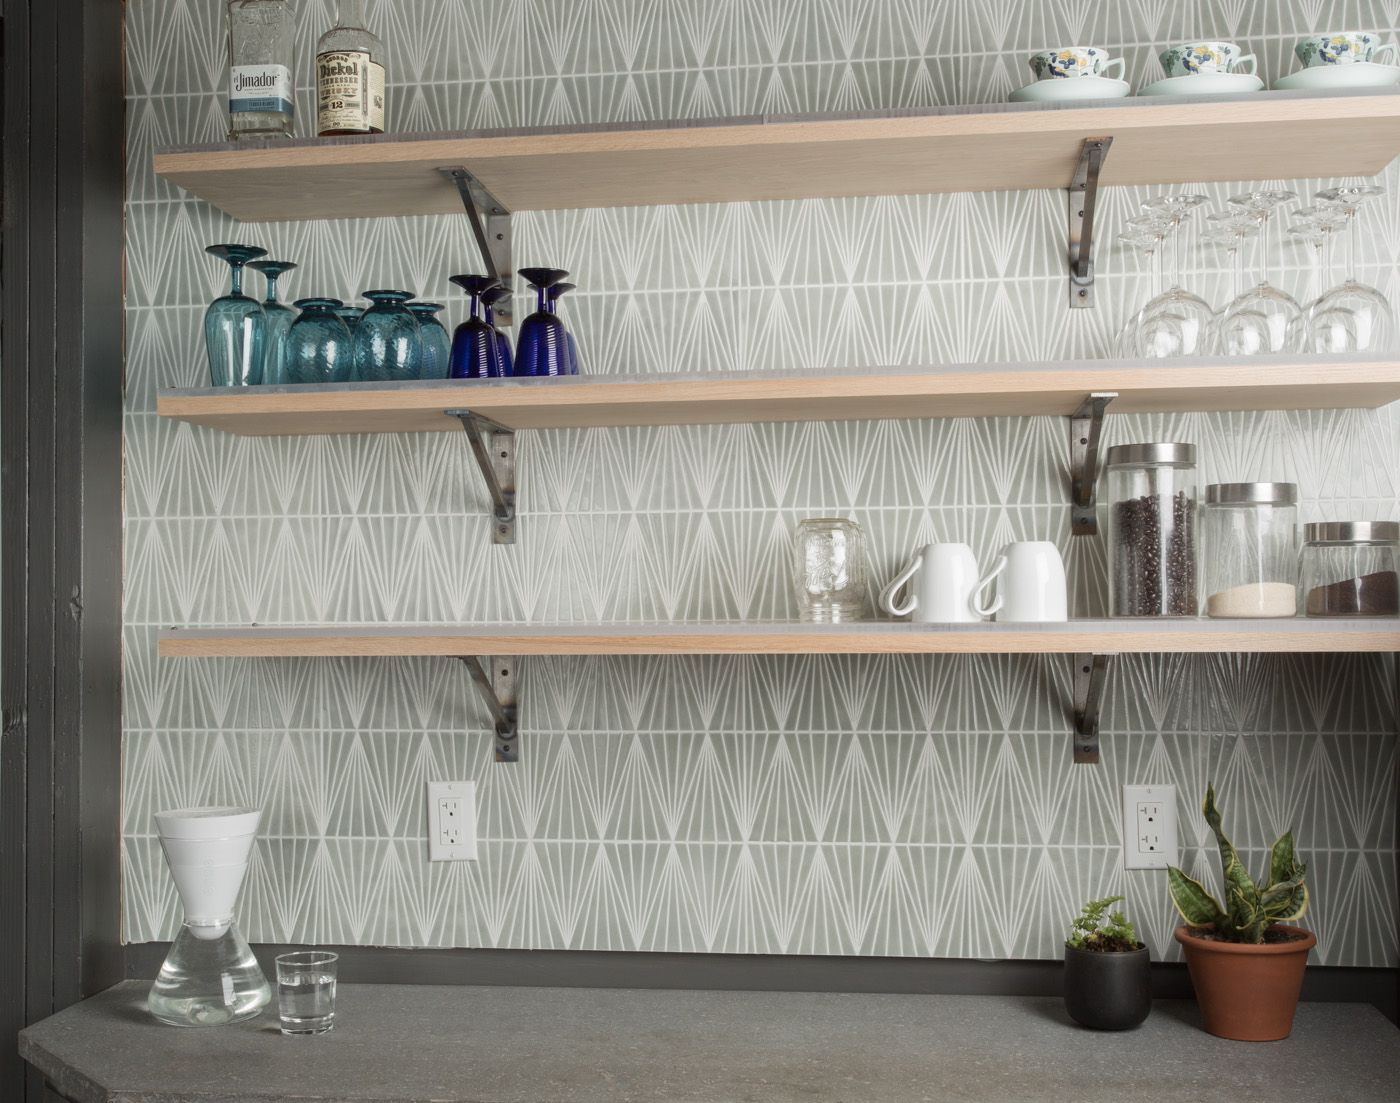 Decorative Wall Tiles For Living Room Adorable Handpainted How It's Made The Final Edit  Fireclay Tile Design Inspiration Design